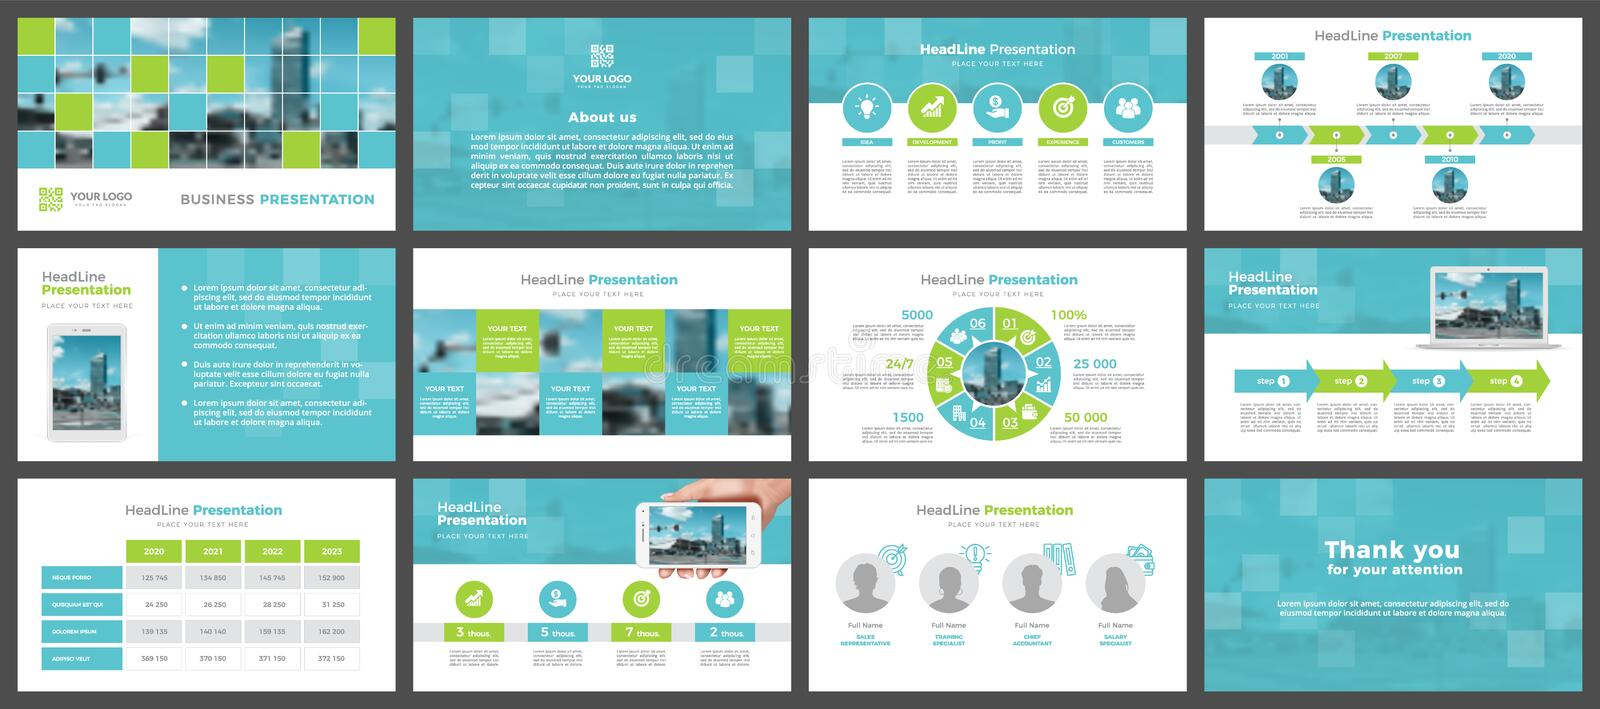 Presentation templates, corporate. Elements of infographics for presentation templates. royalty free stock image